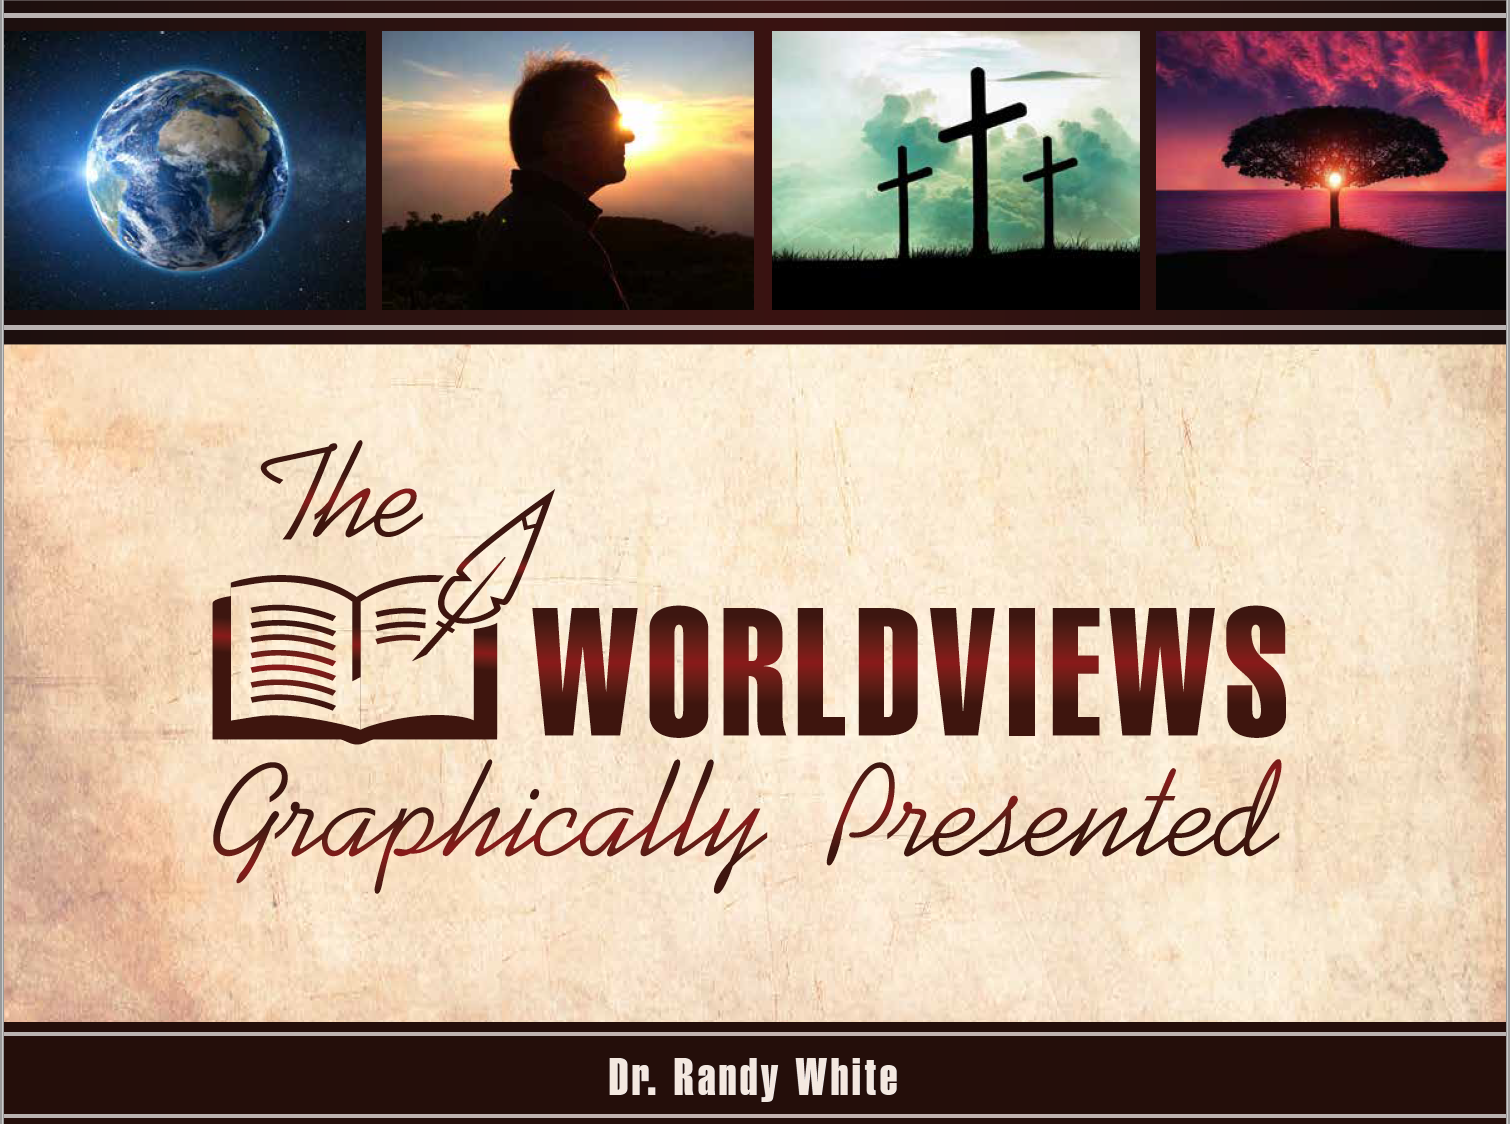 Worldviews Graphically Presented